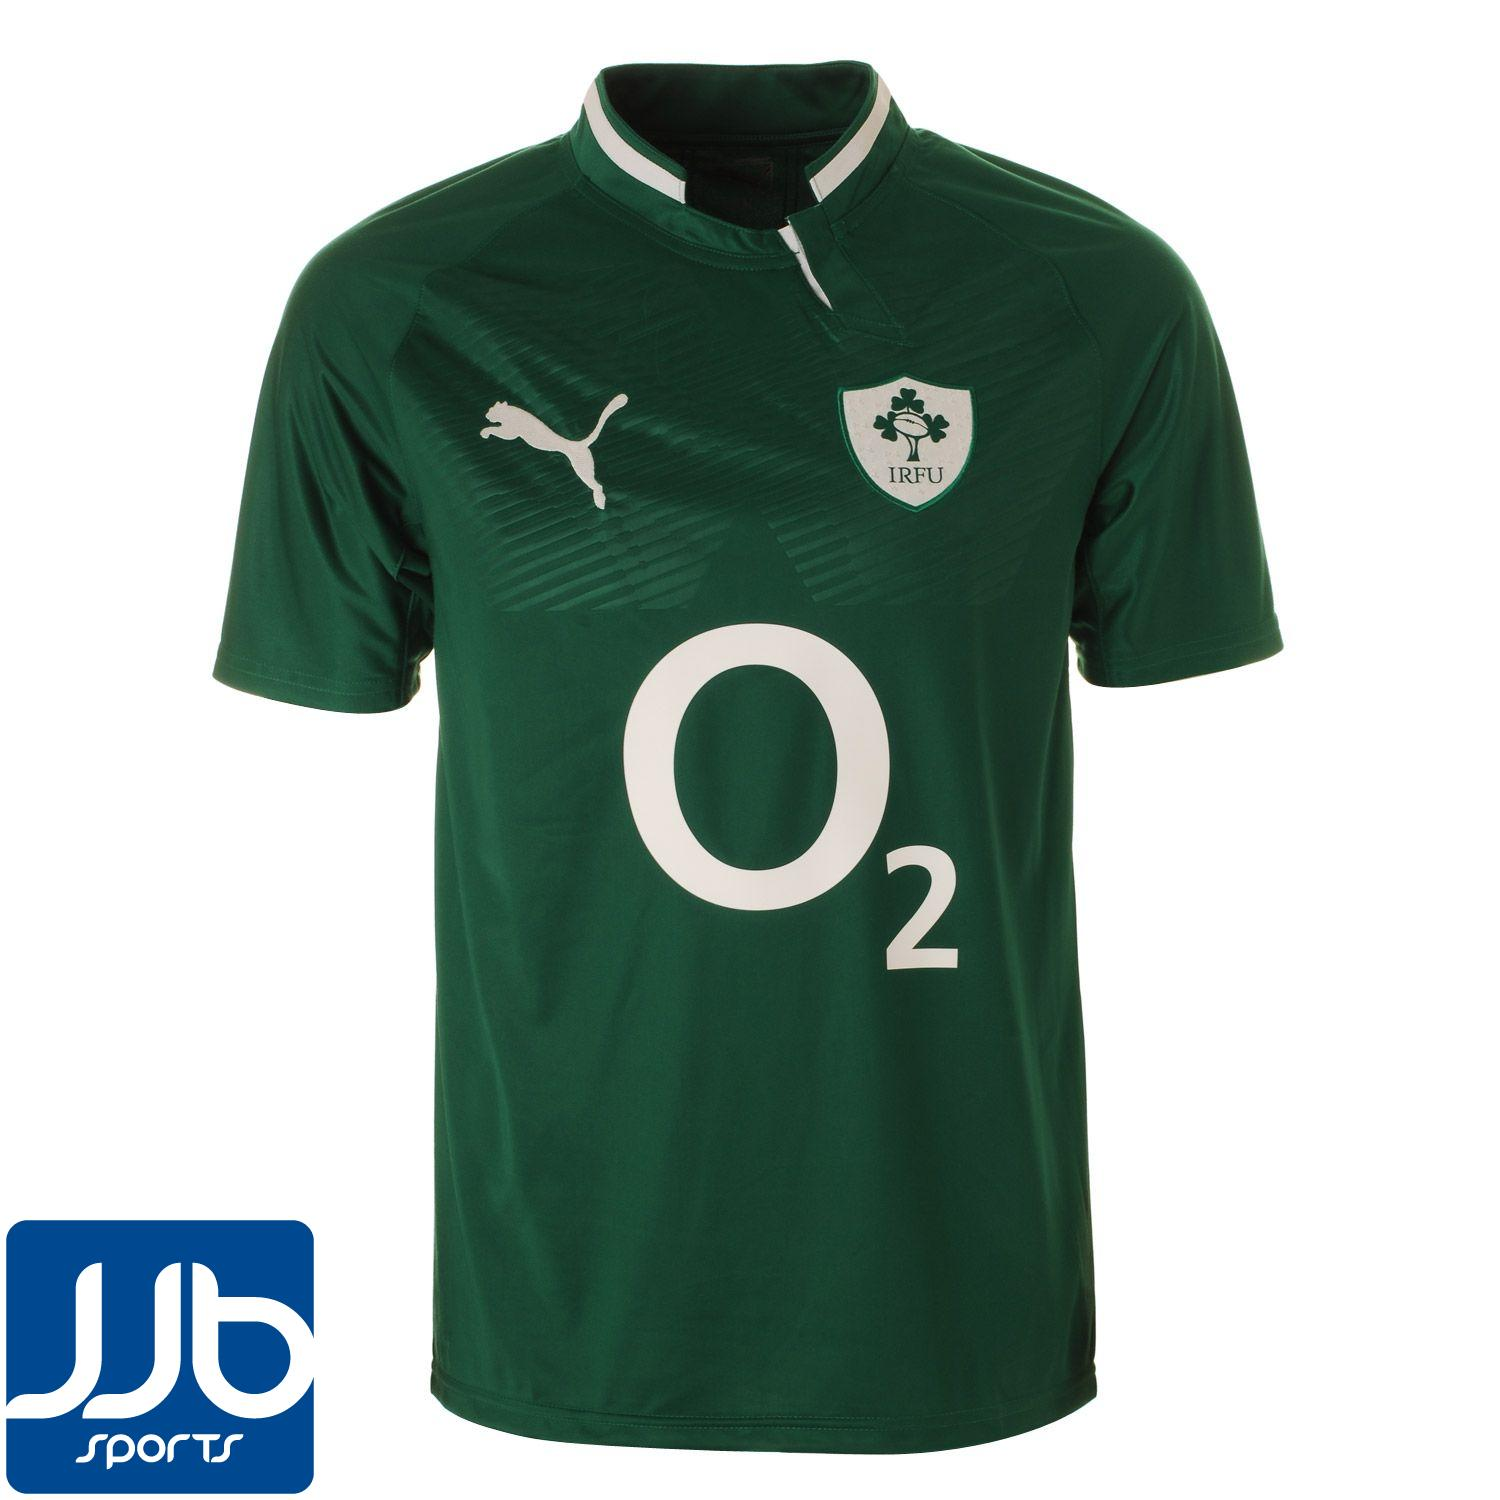 Azerbaijan Rugby Union Official Home: Ireland Rugby Union Mens Home Replica Jersey 2011/12